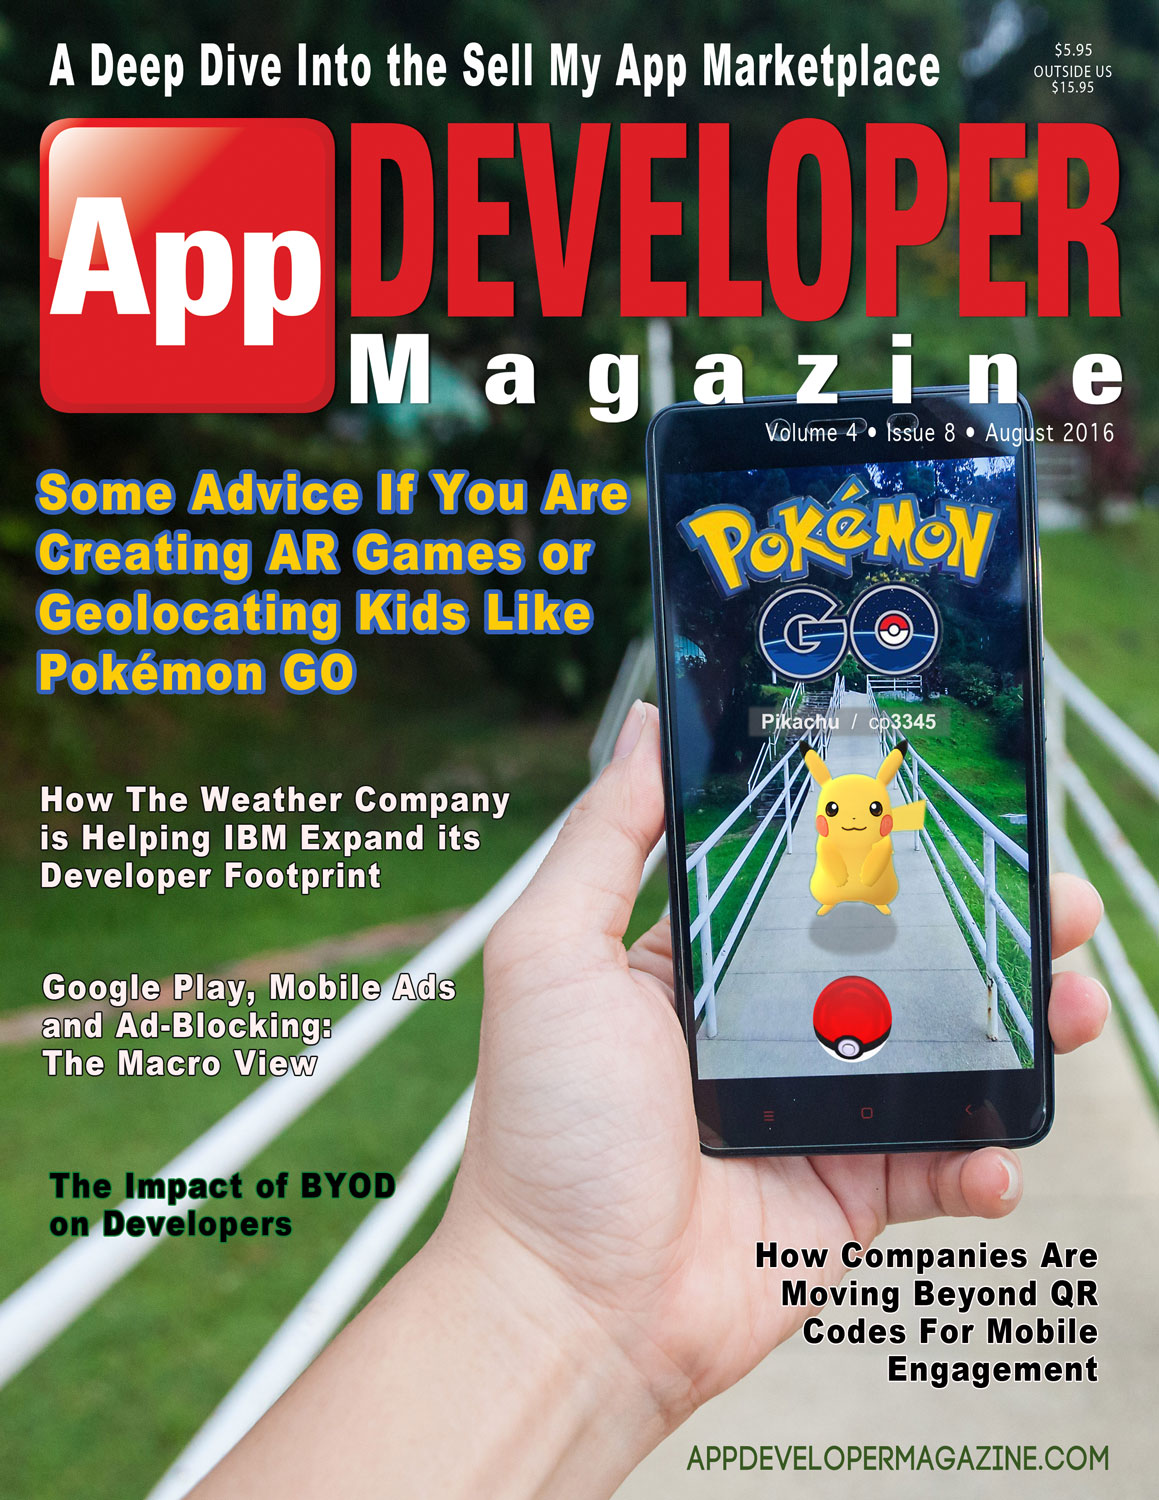 App Developer Magazine August 2016 Cover